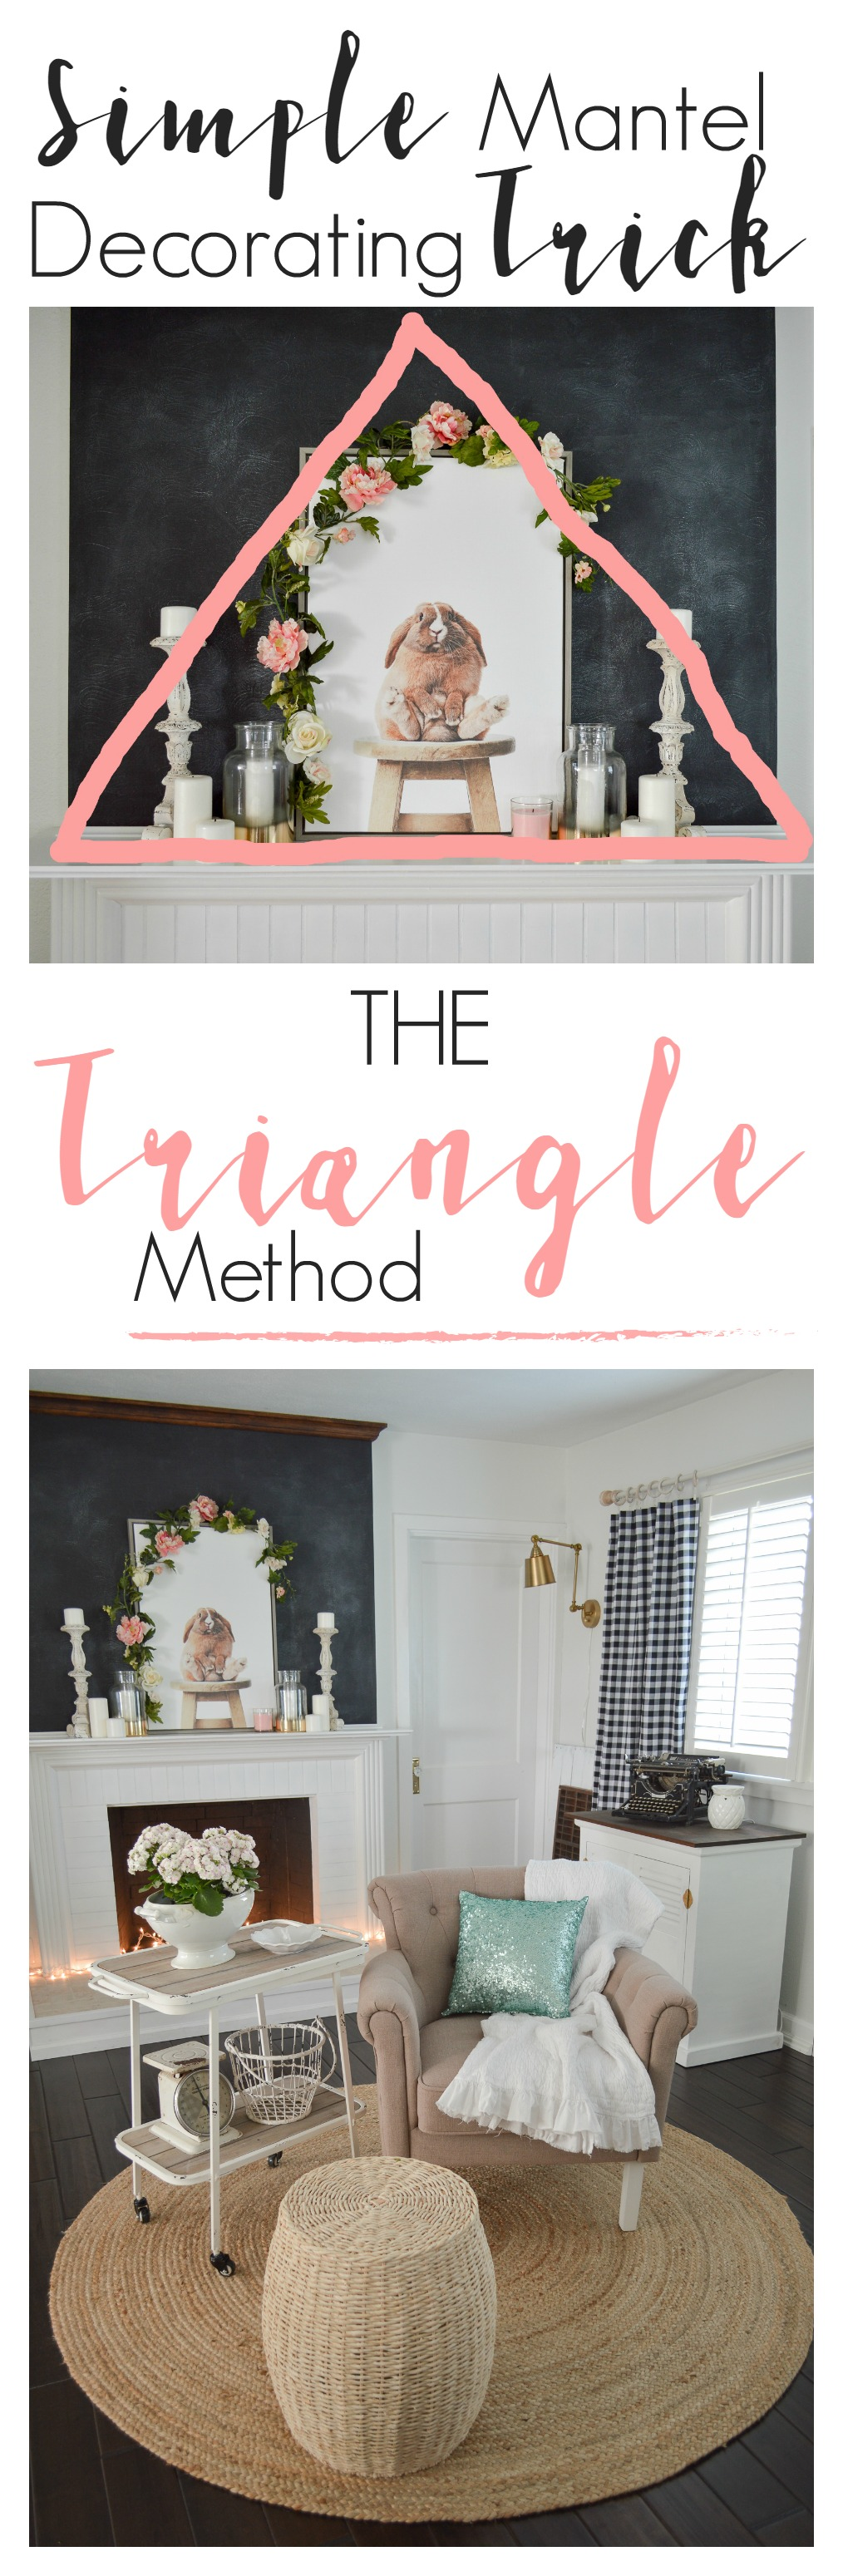 Simple Spring Cottage Entry + Fireplace Mantel. Have trouble getting your decor just right on your mantel? Try making a triangle and decorating your mantel will be simple and easy!